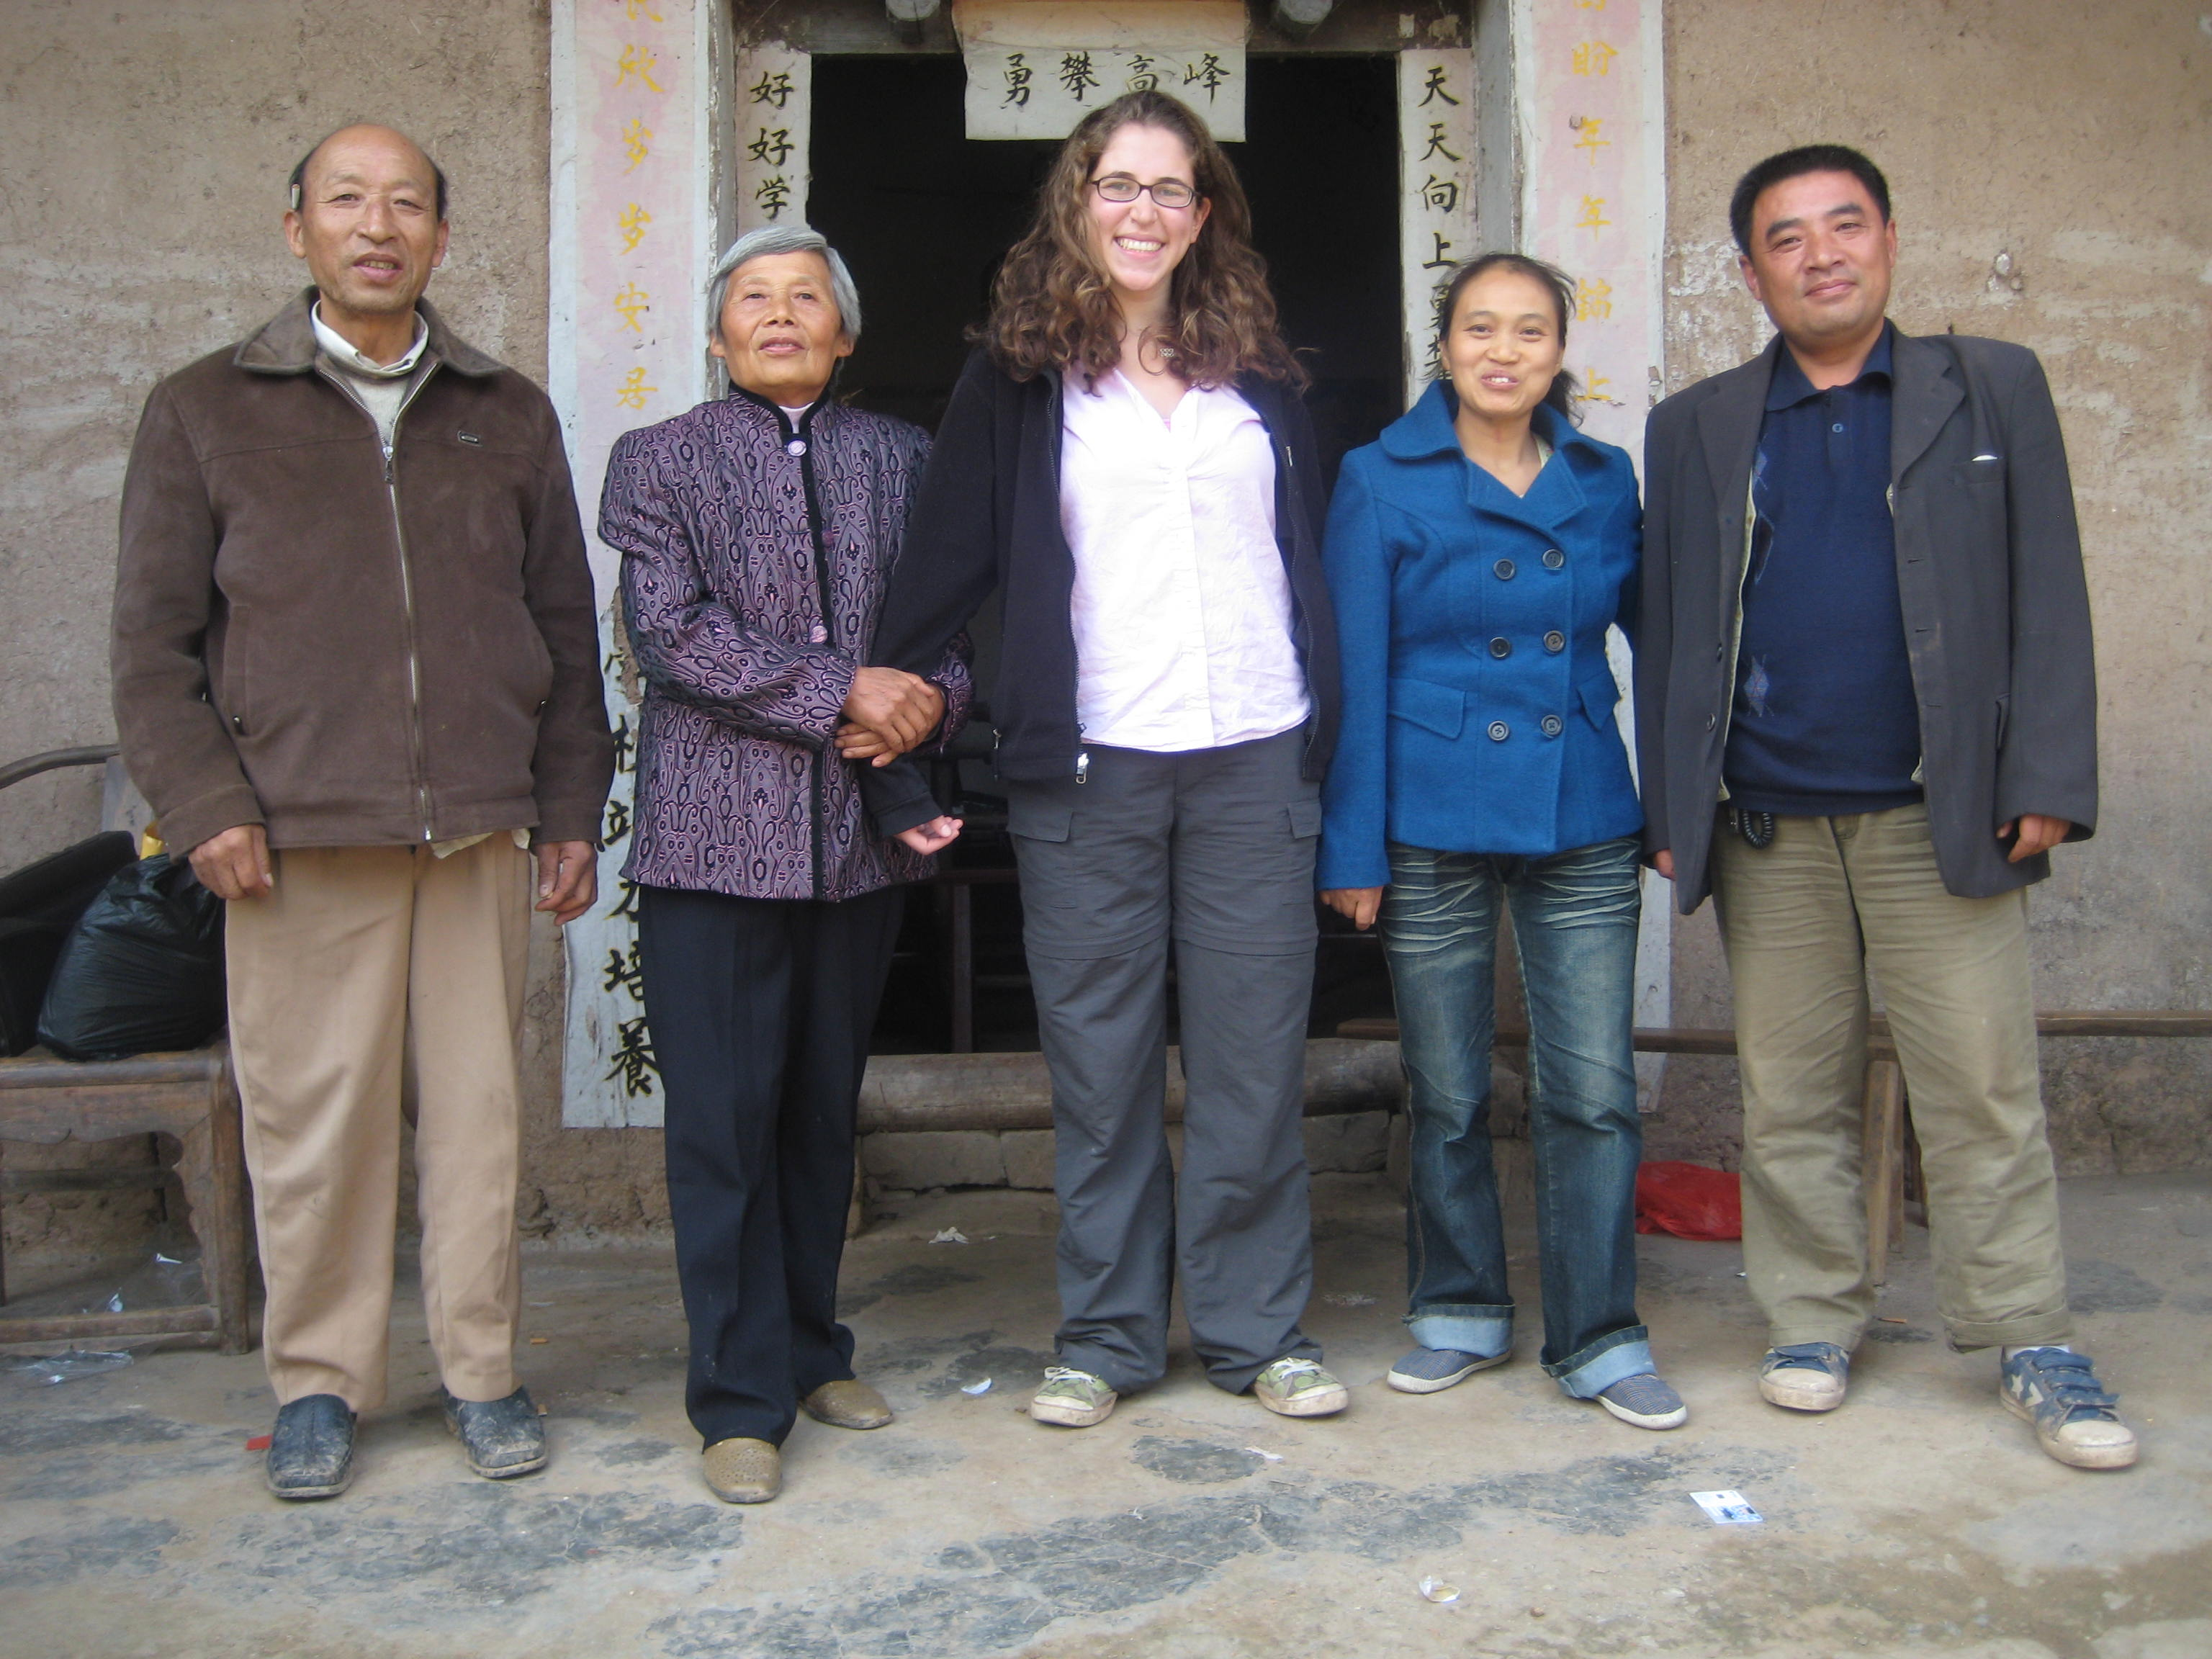 Visiting the home of microfinance clients in China-- I look like a giant in this country, don't I?